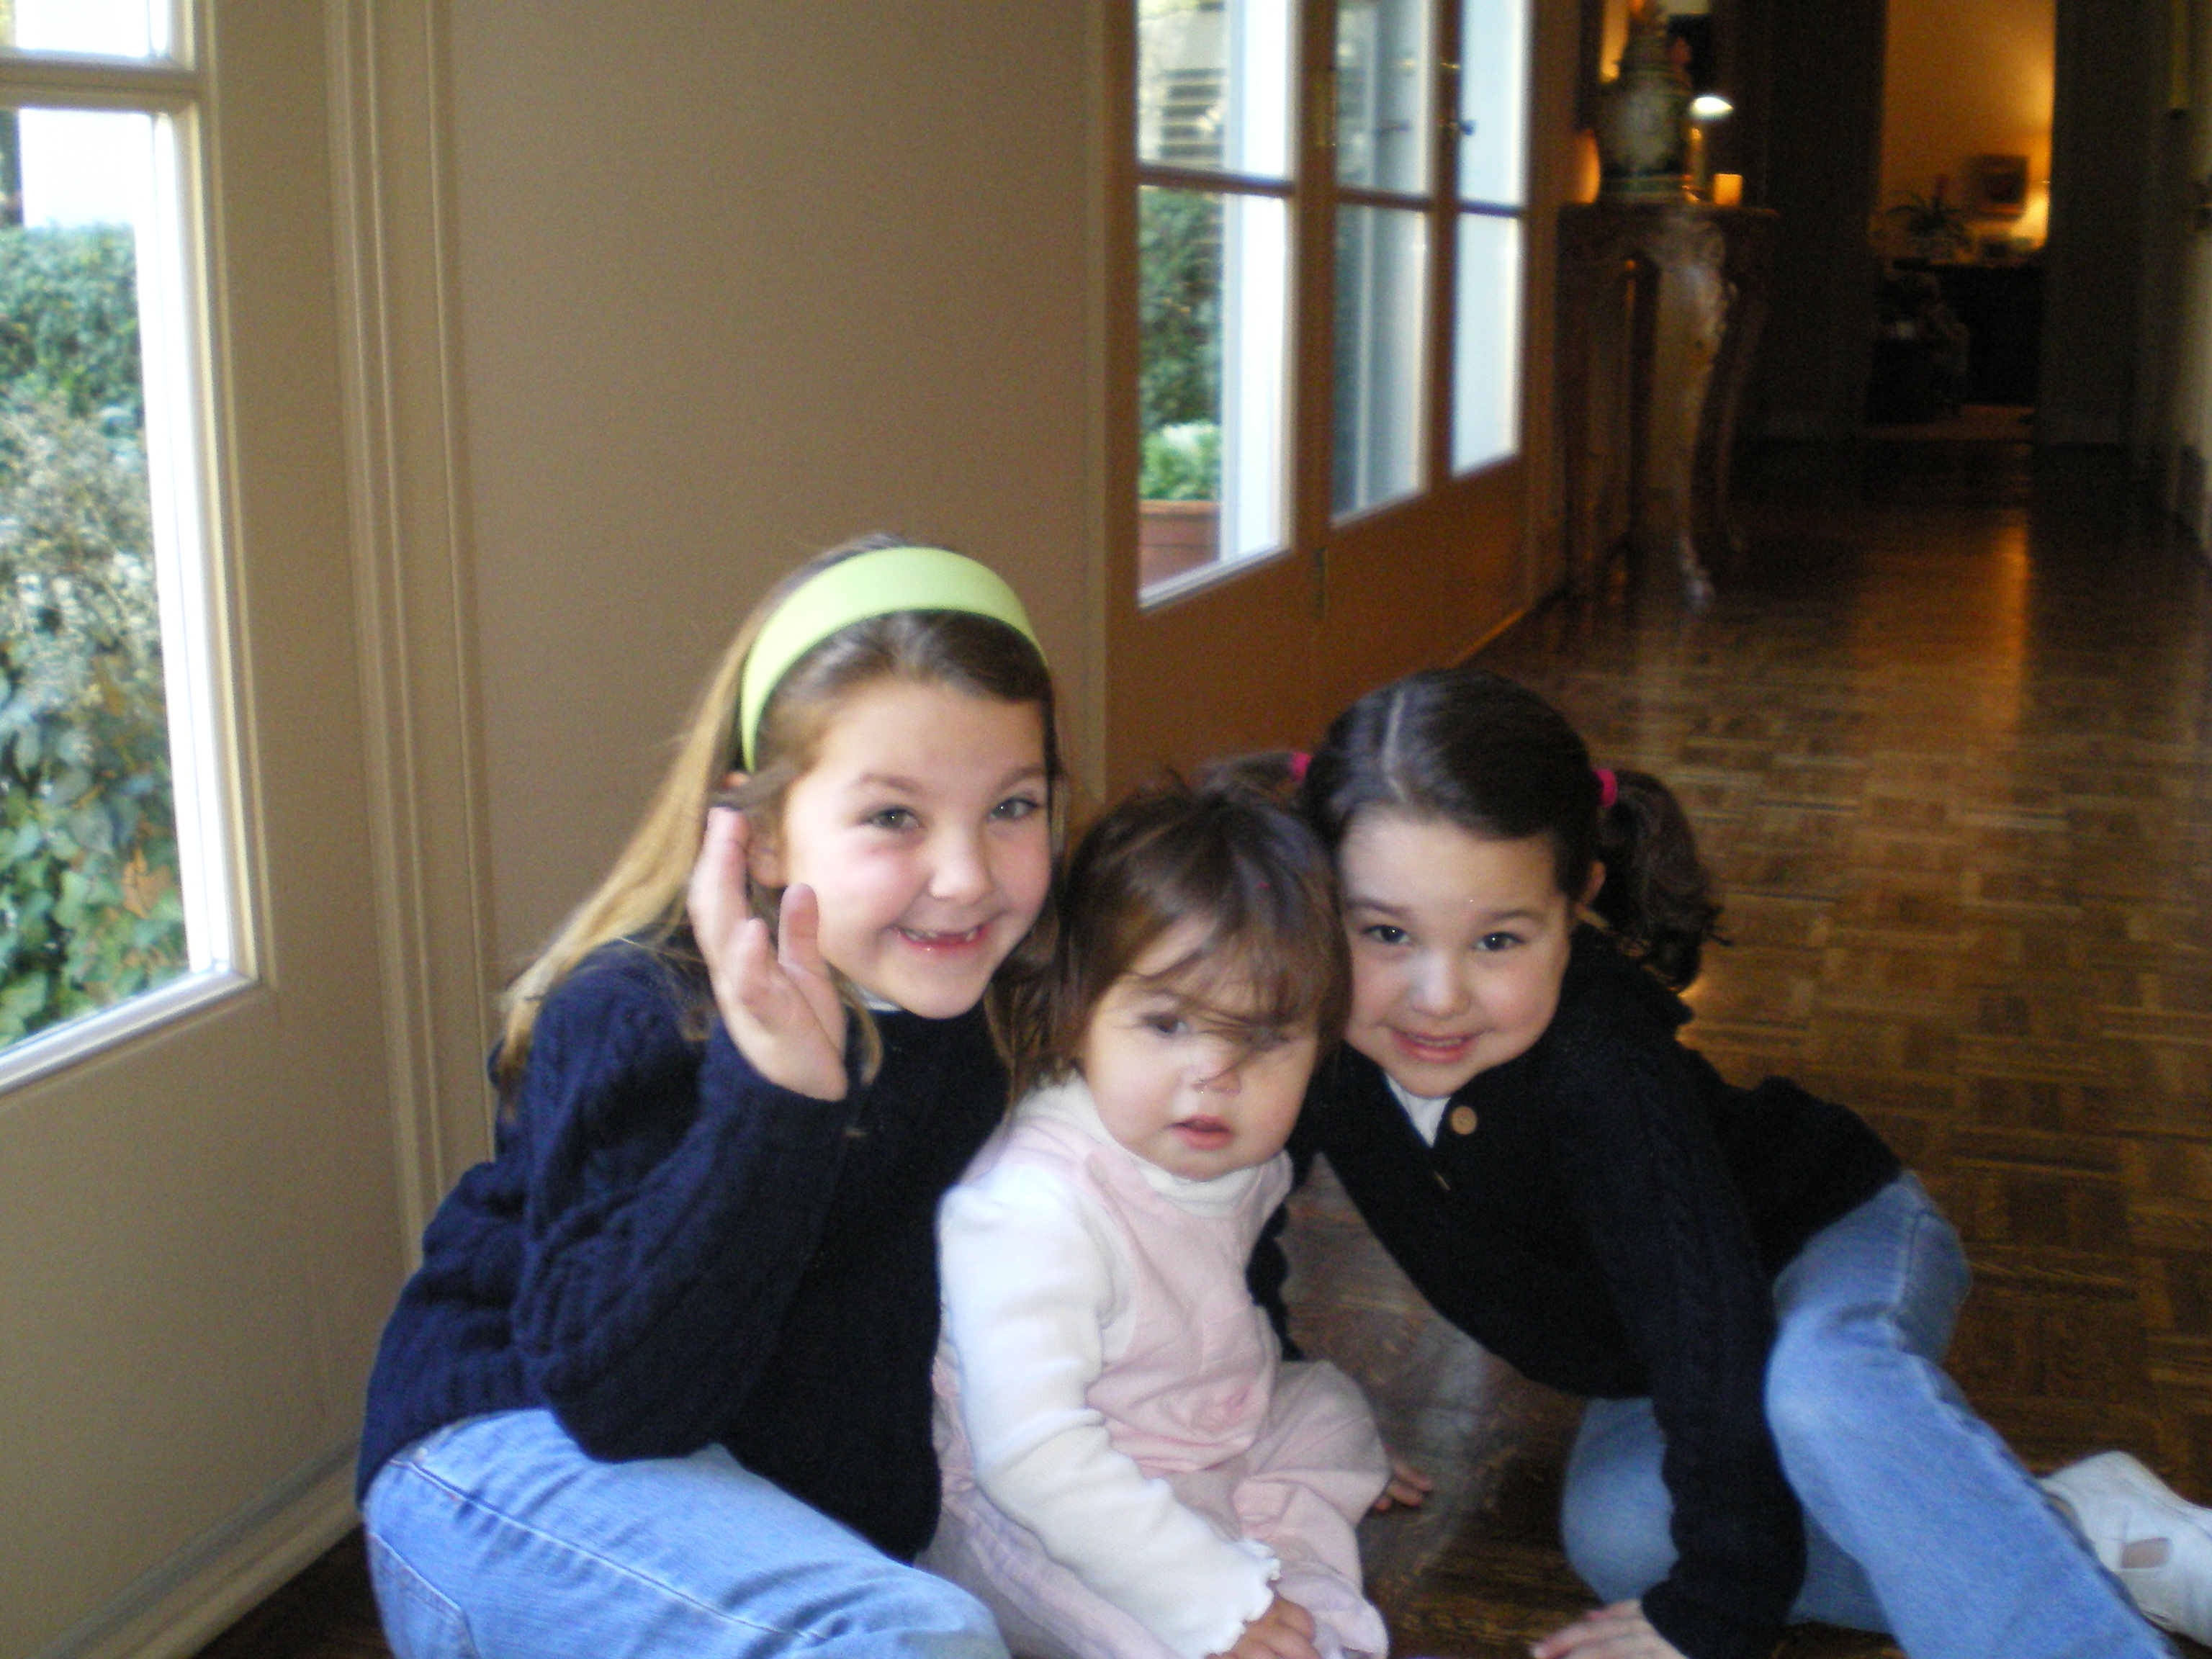 My Three Nieces - Macon, Kate, and Anne Shelton at My Parent's House in Dallas